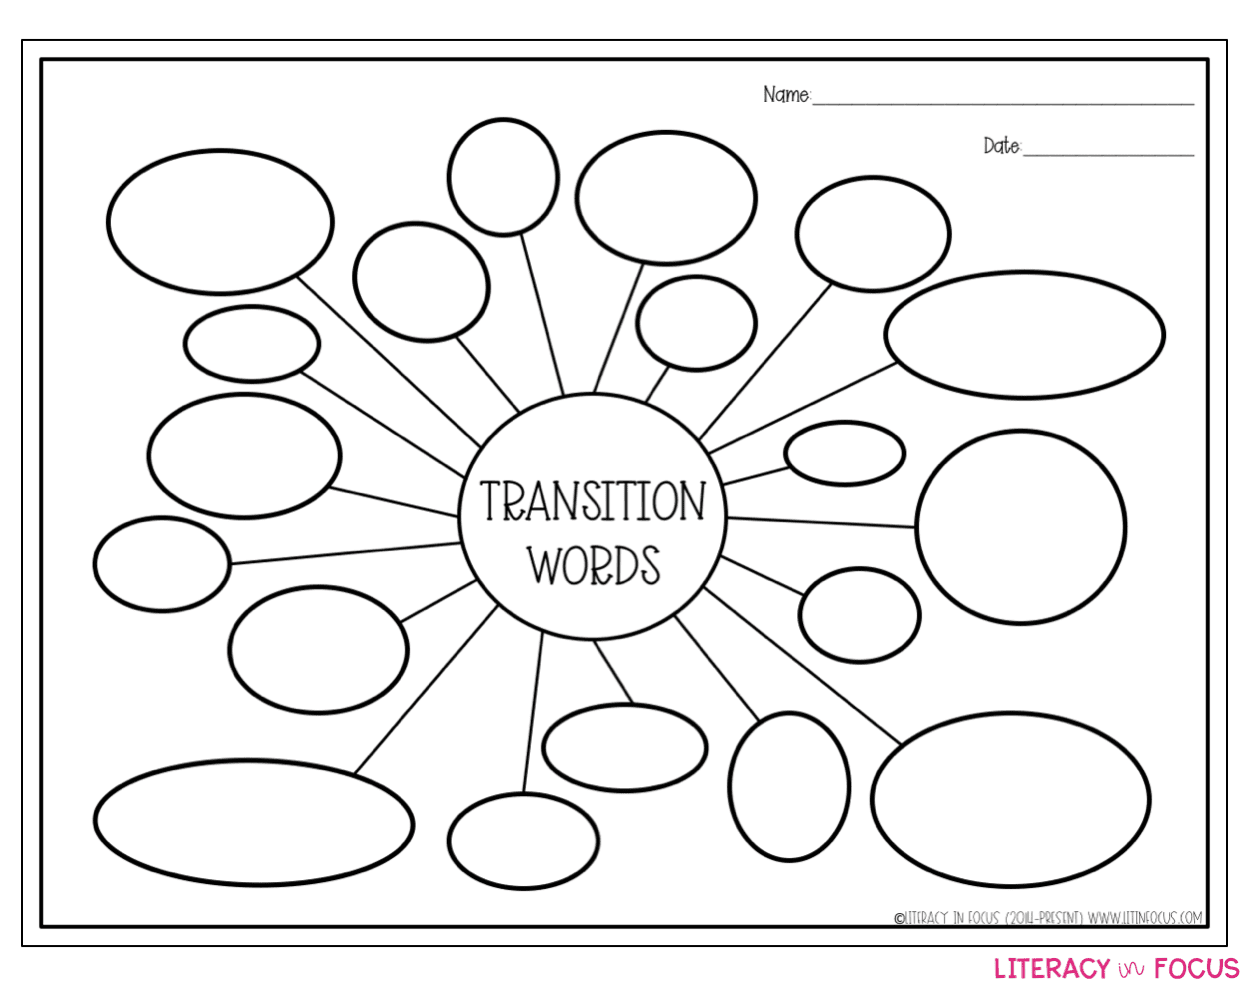 Transition Words Bubble Map